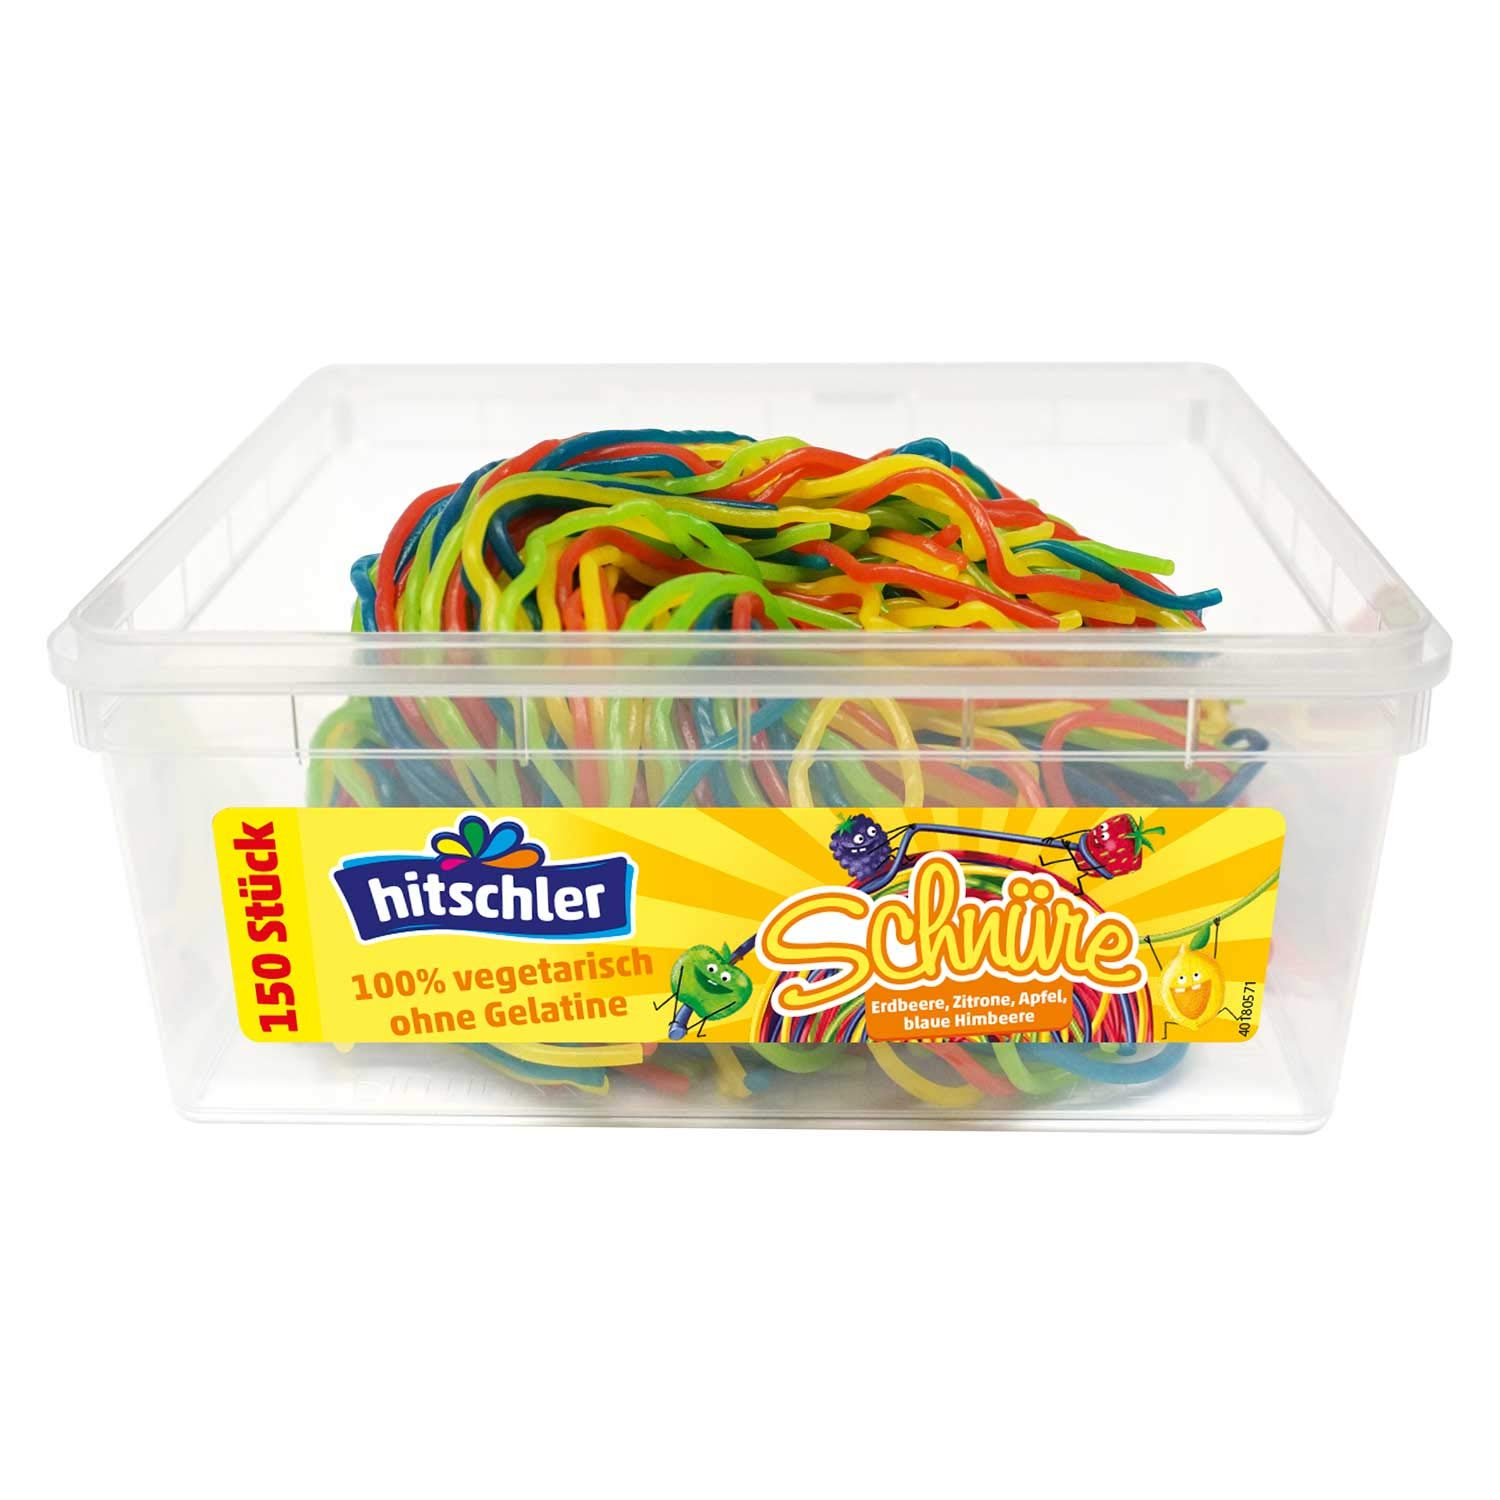 Hitschler Colorful cords 900g by Hitschler (Image #1)